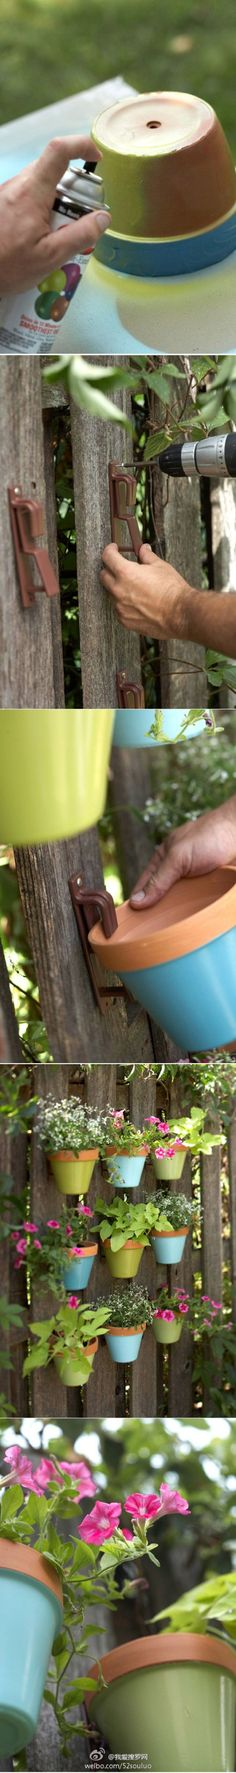 Decorate a fence with hanging flower pots painted for lots of color and life. Project published in Better Homes and Gardens.